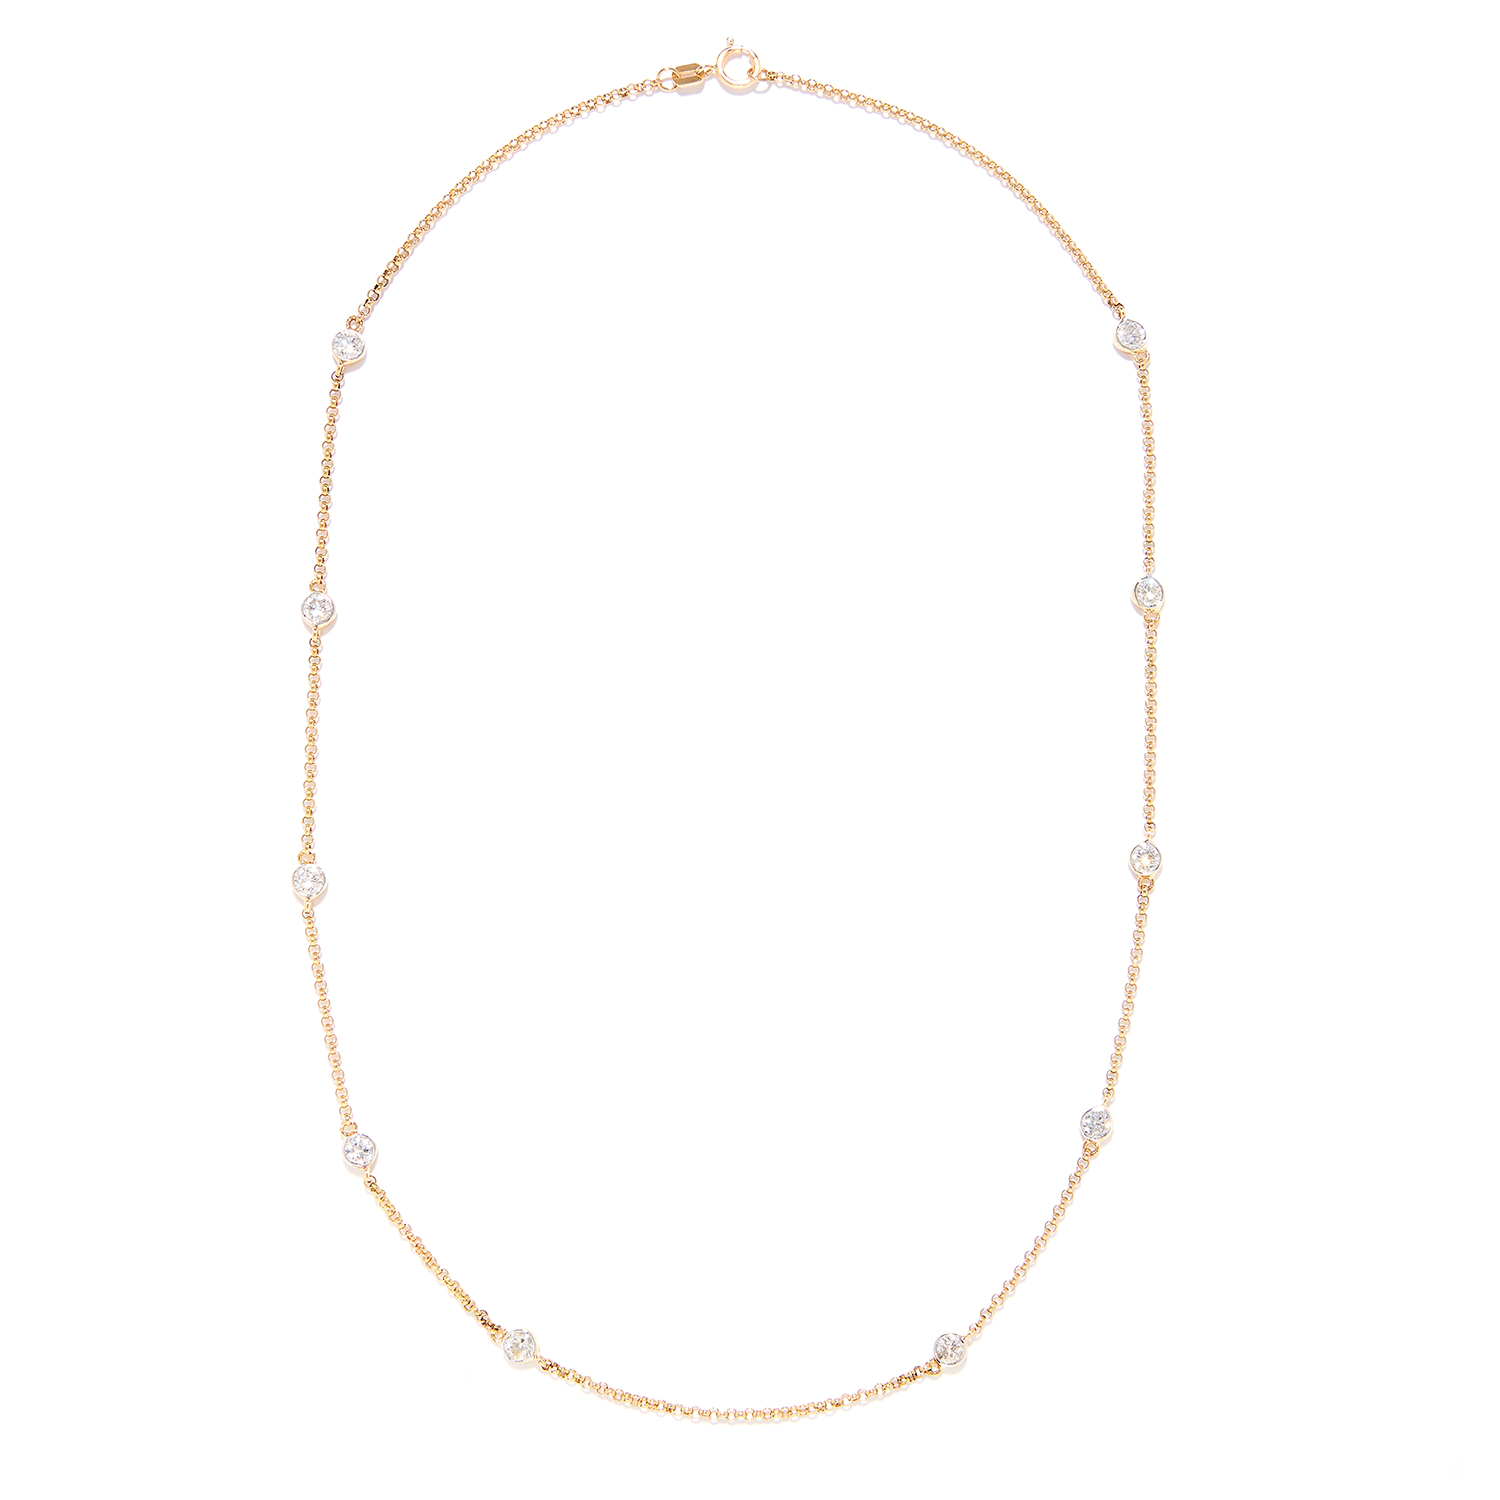 Los 56 - 1.75 CARAT DIAMOND CHAIN NECKLACE in 18ct yellow gold, set with ten round cut diamonds totalling